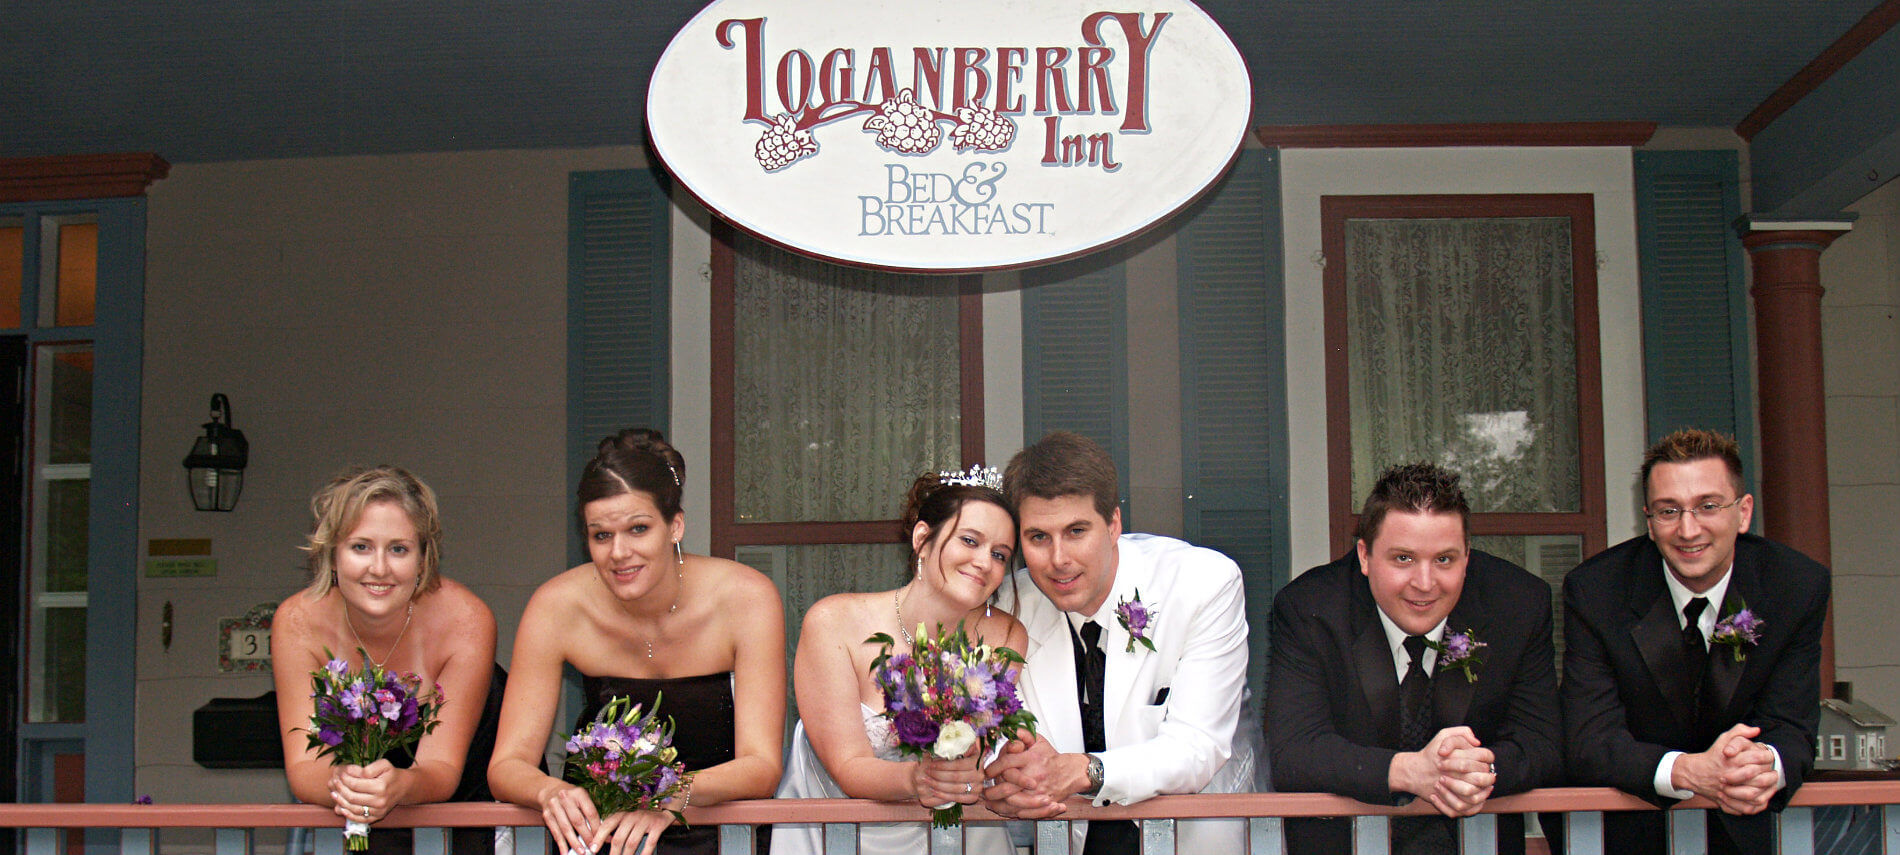 Bride and groom in white, maids of honor and groomsmen in black, smiling on the porch under the Loganberry Inn sign